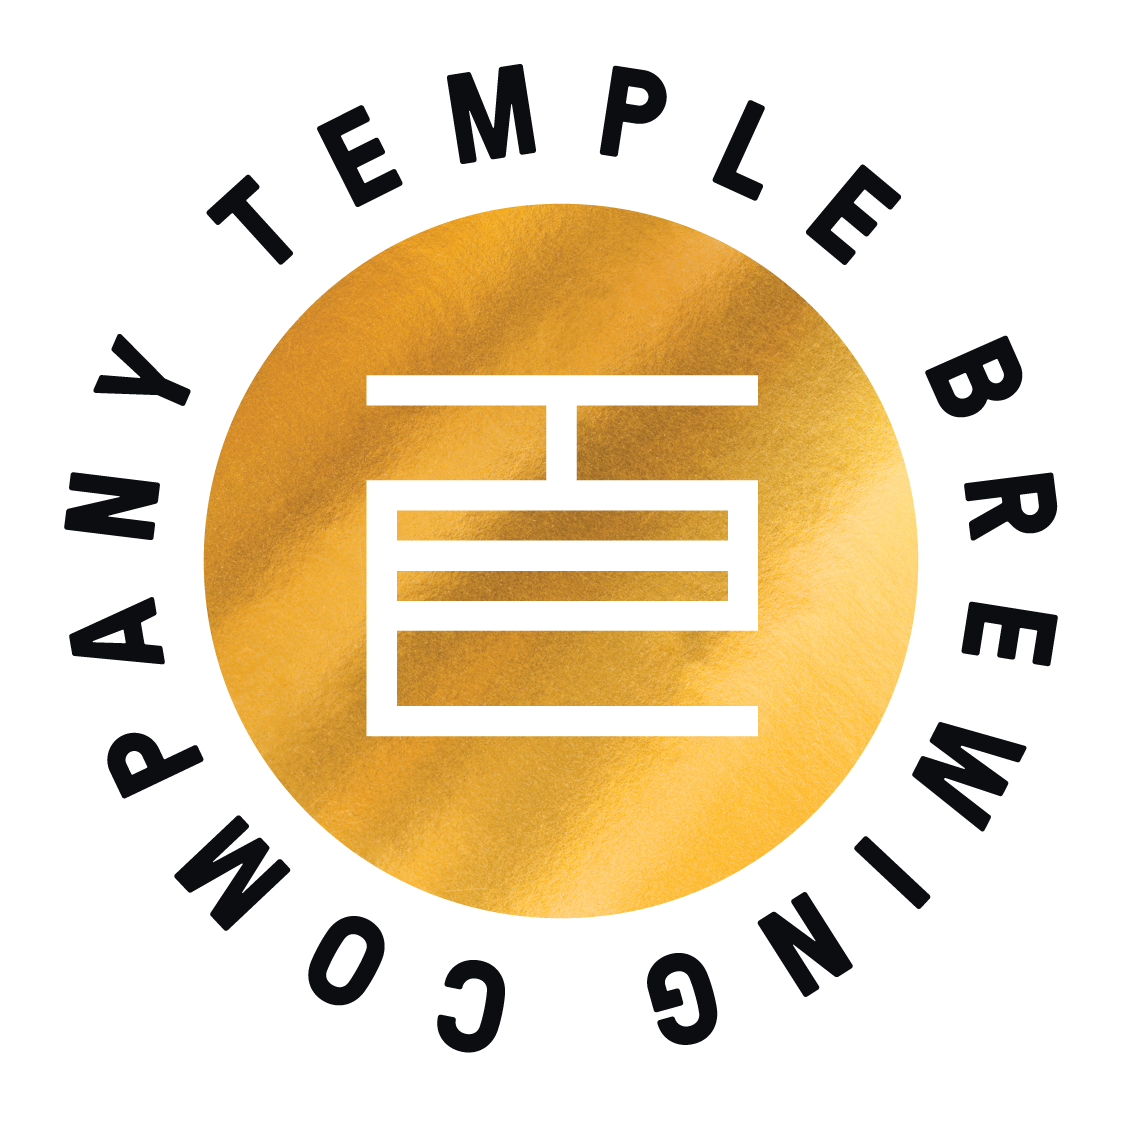 Temple Brewing Company